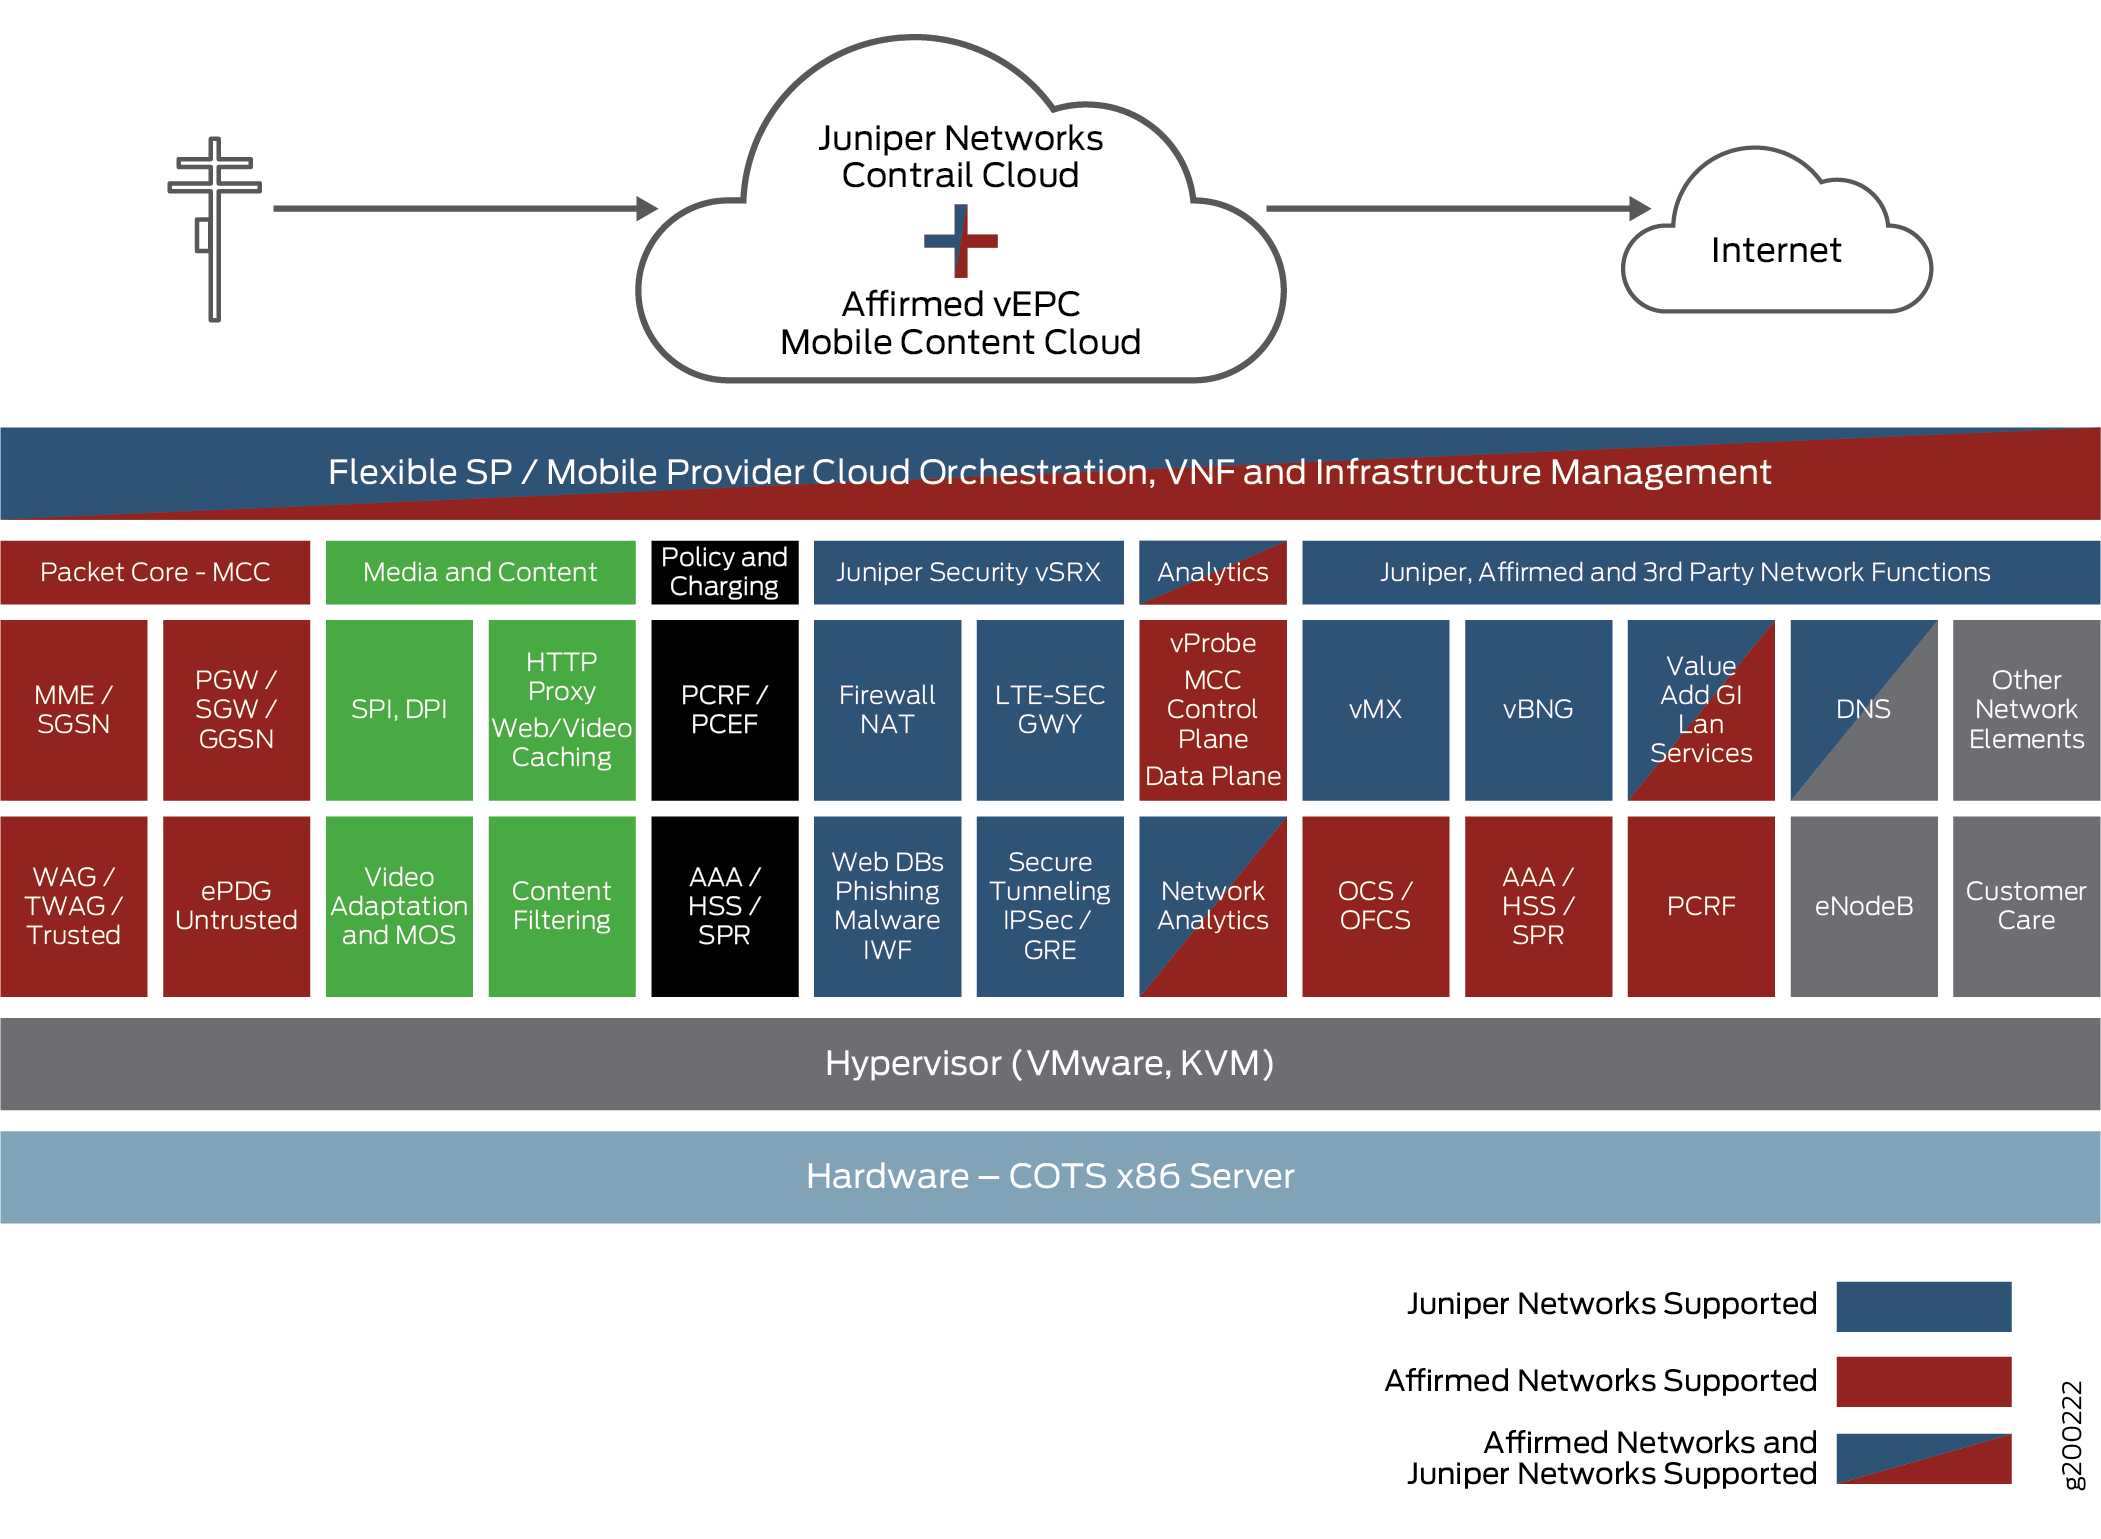 Affirmed Networks and Juniper Networks Supported NFV